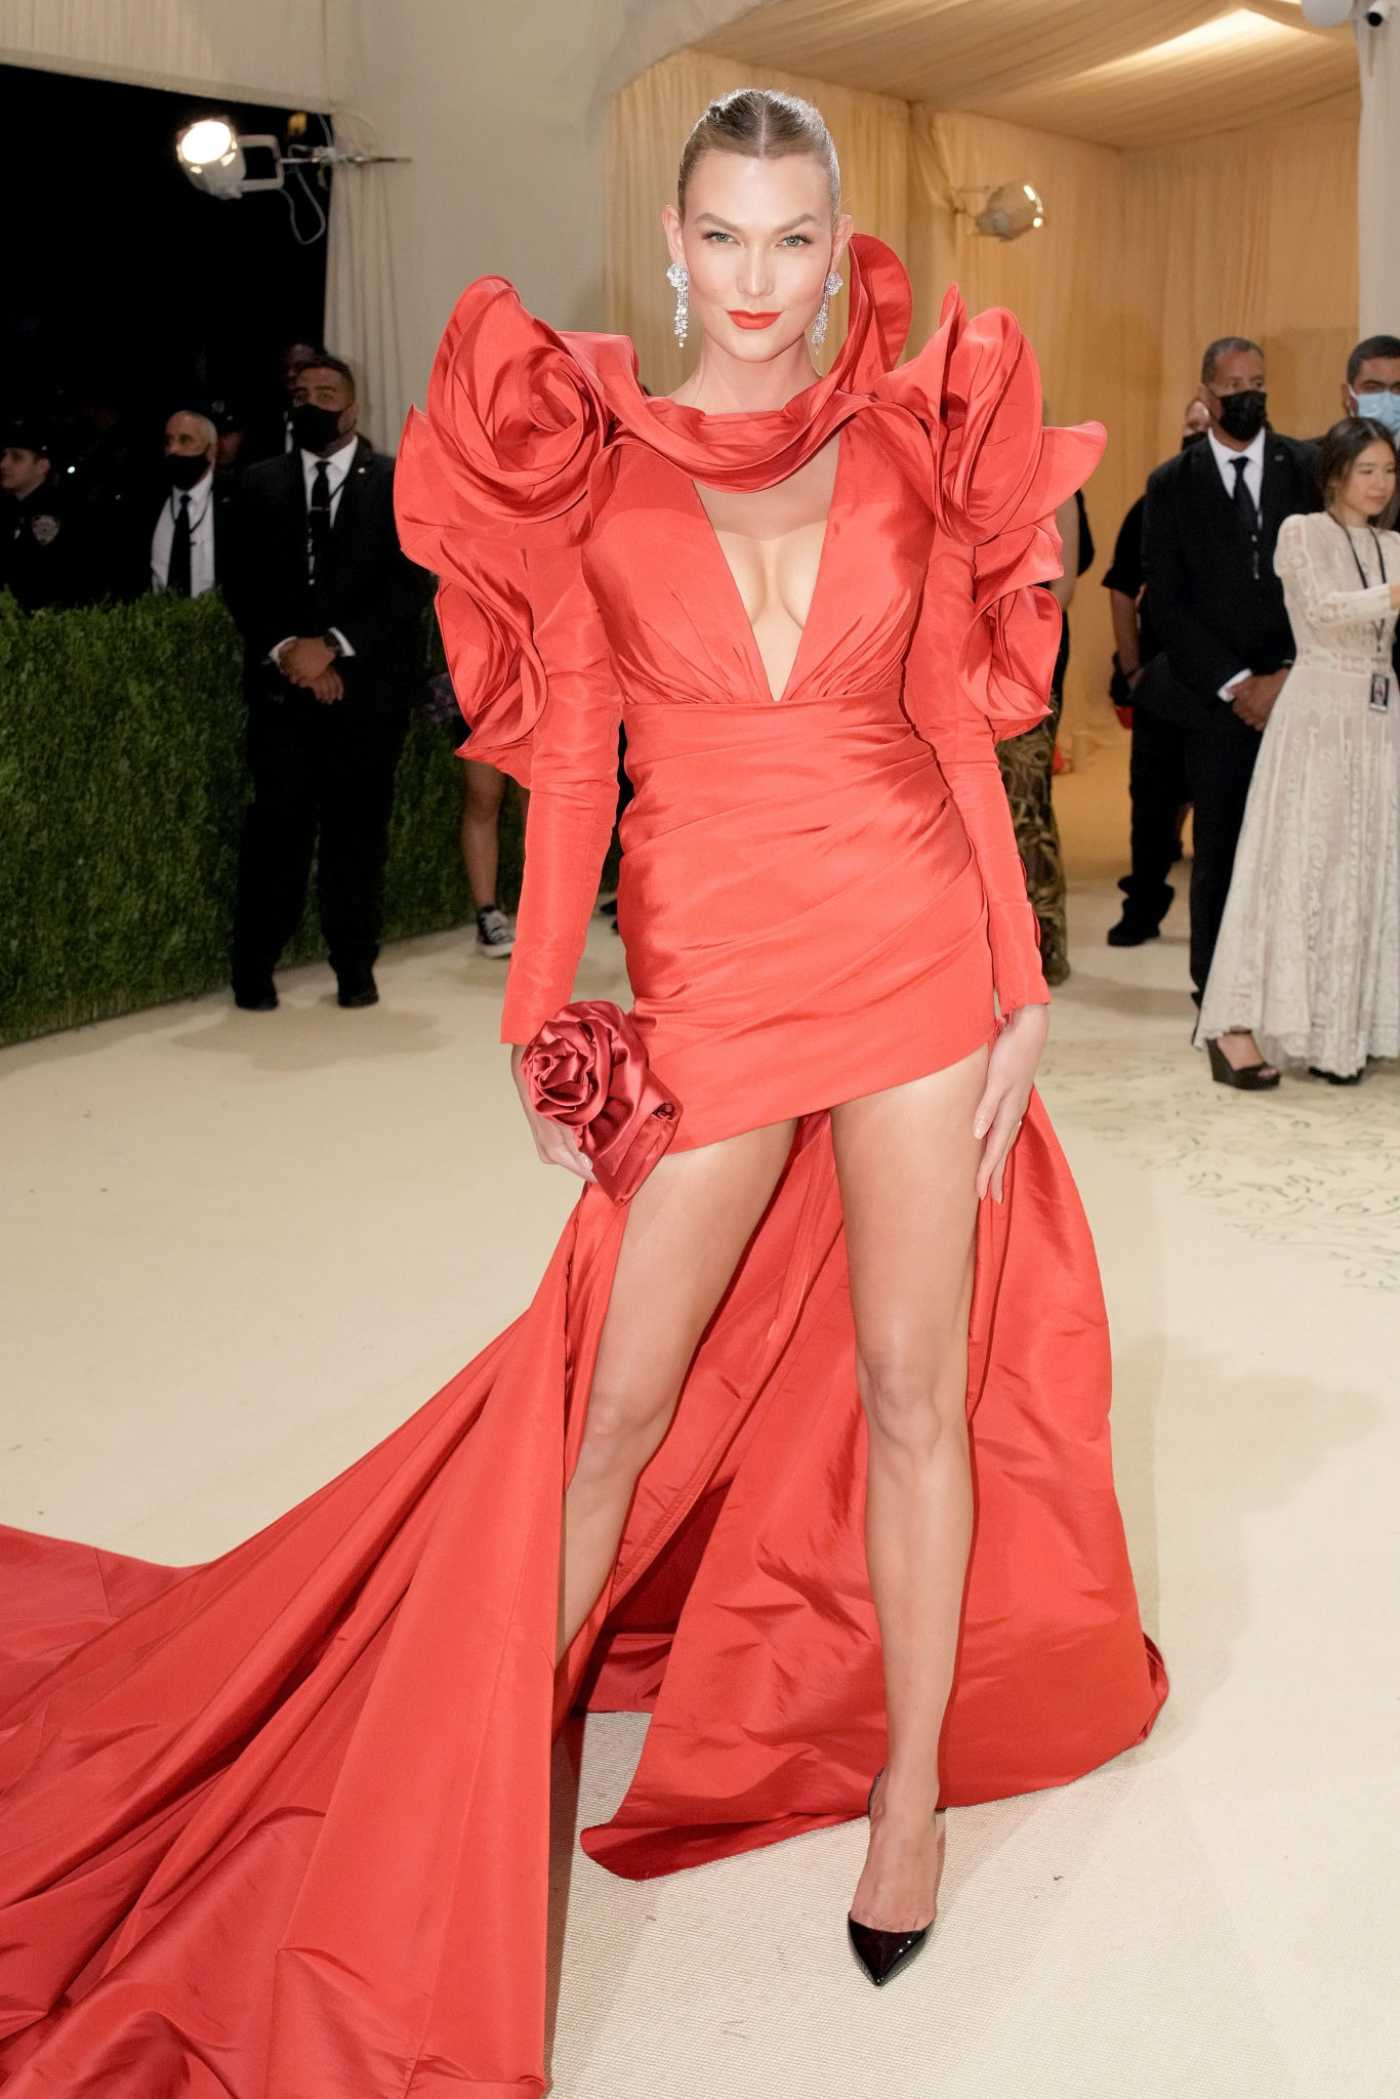 Karlie Kloss Attends 2021 Met Gala In America: A Lexicon of Fashion at Metropolitan Museum of Art in New York City 09/13/2021